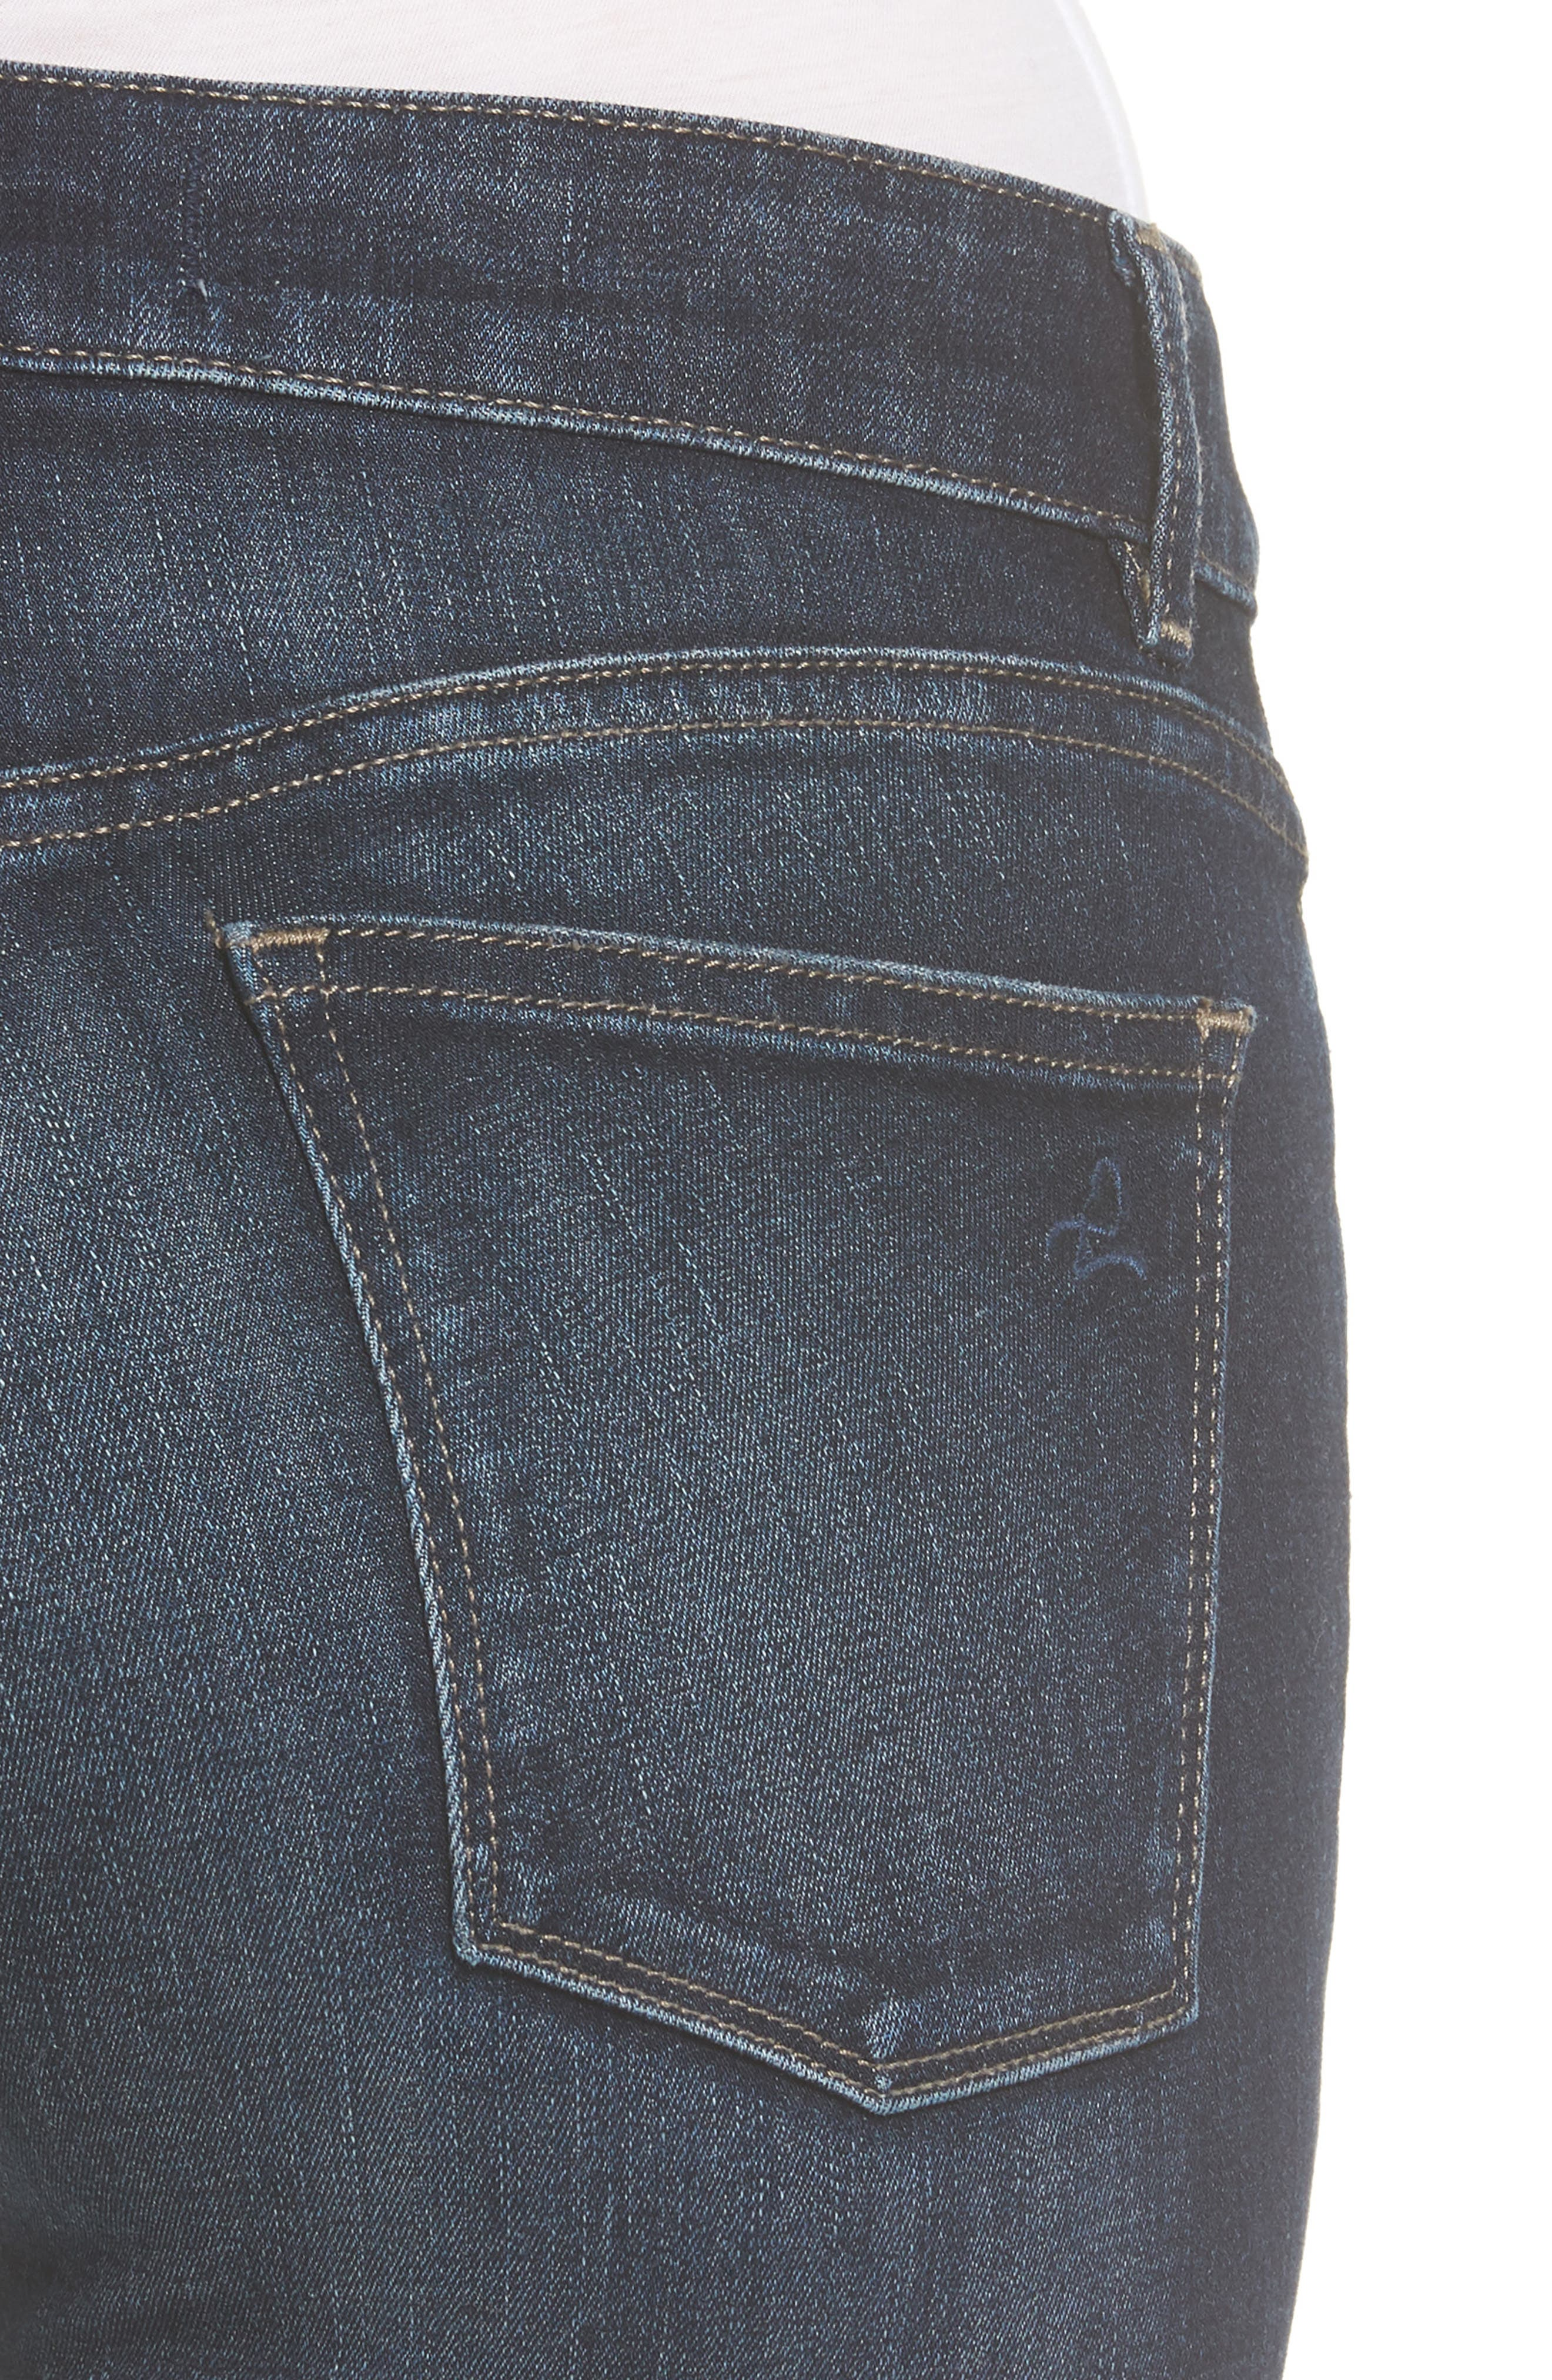 Florence Instasculpt Skinny Jeans,                             Alternate thumbnail 4, color,                             Darcy